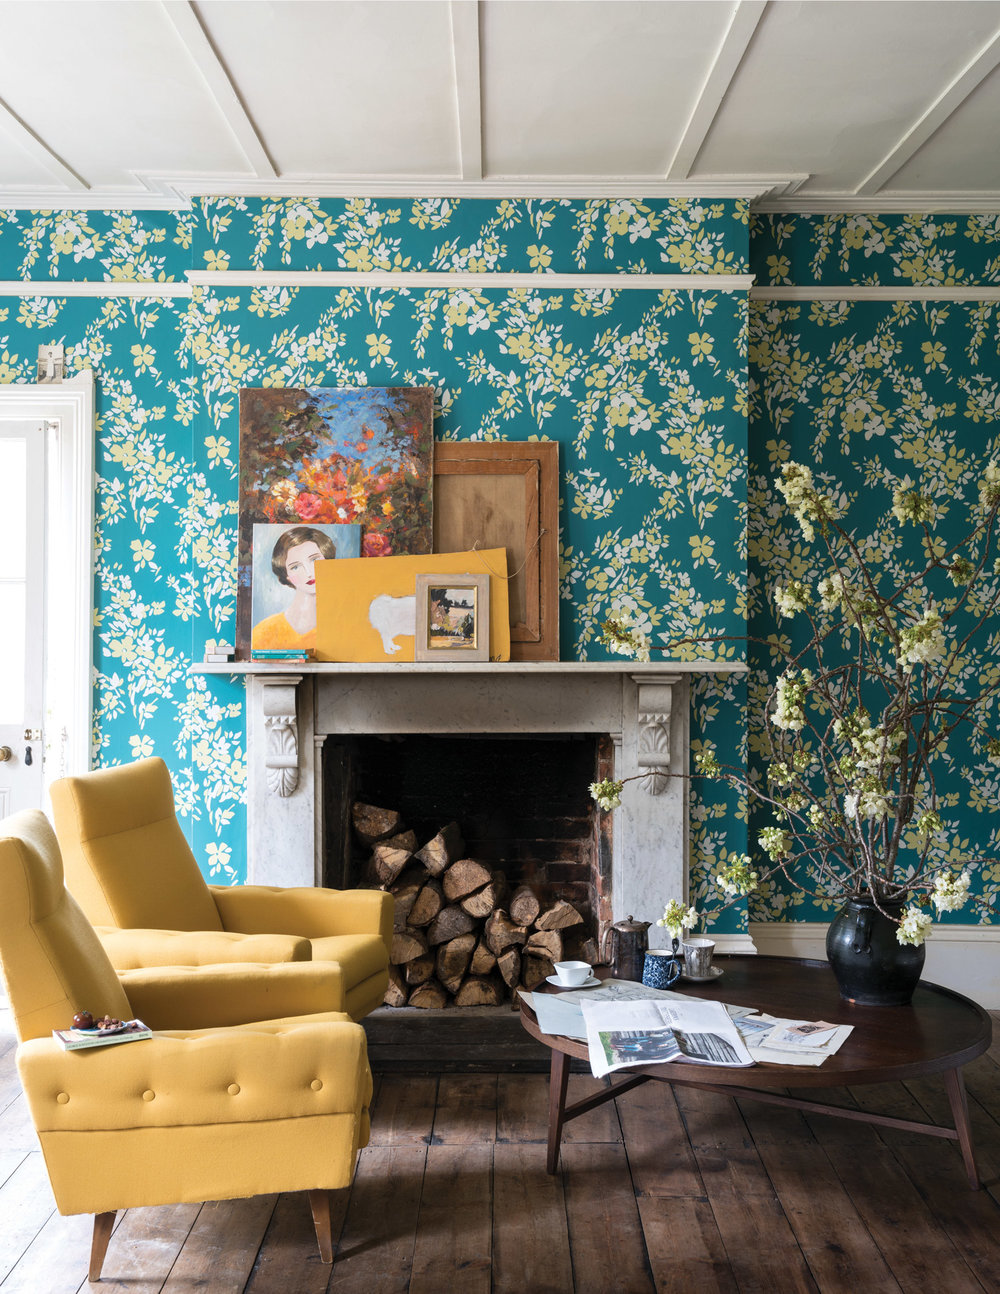 Image Credit: Farrow & Ball